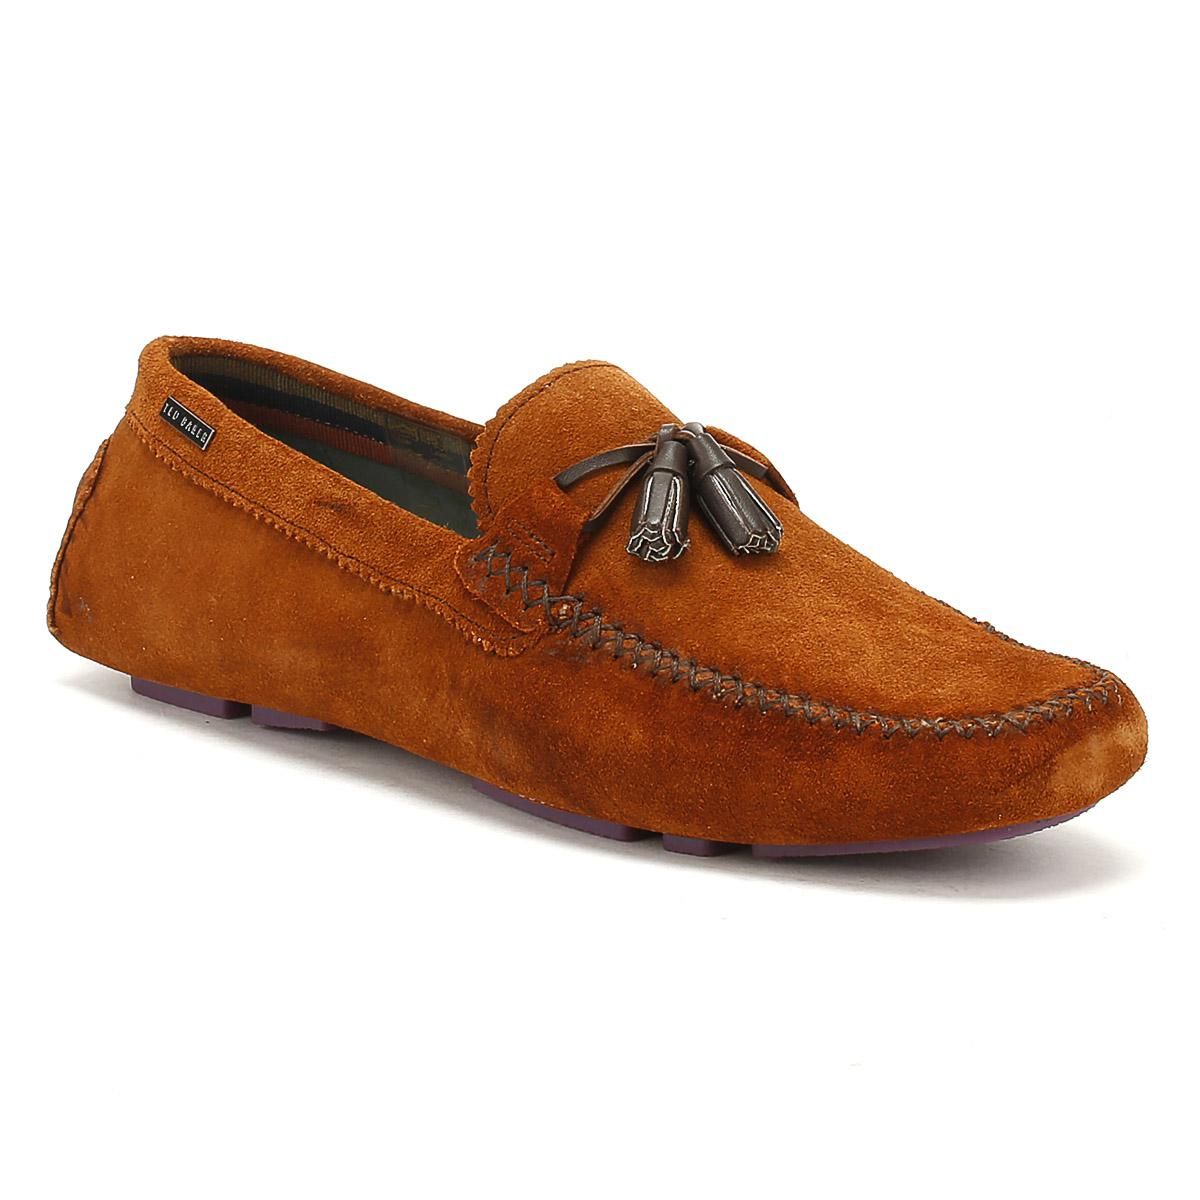 Mens Tan Urbonn Suede Shoes